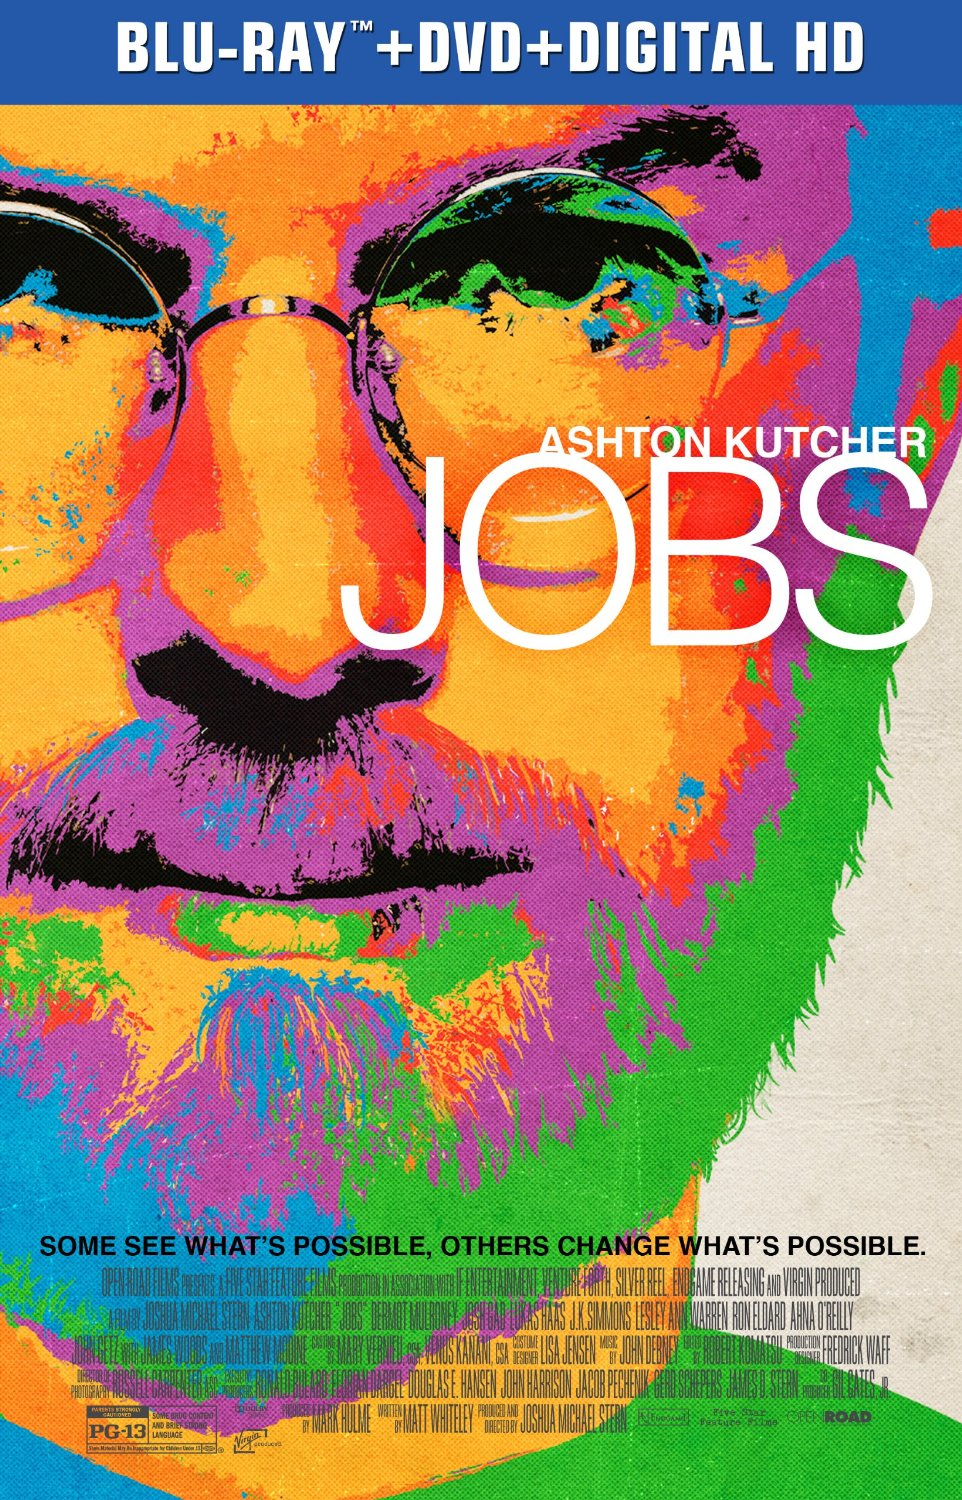 'Jobs' gets digital, Blu-ray release dates